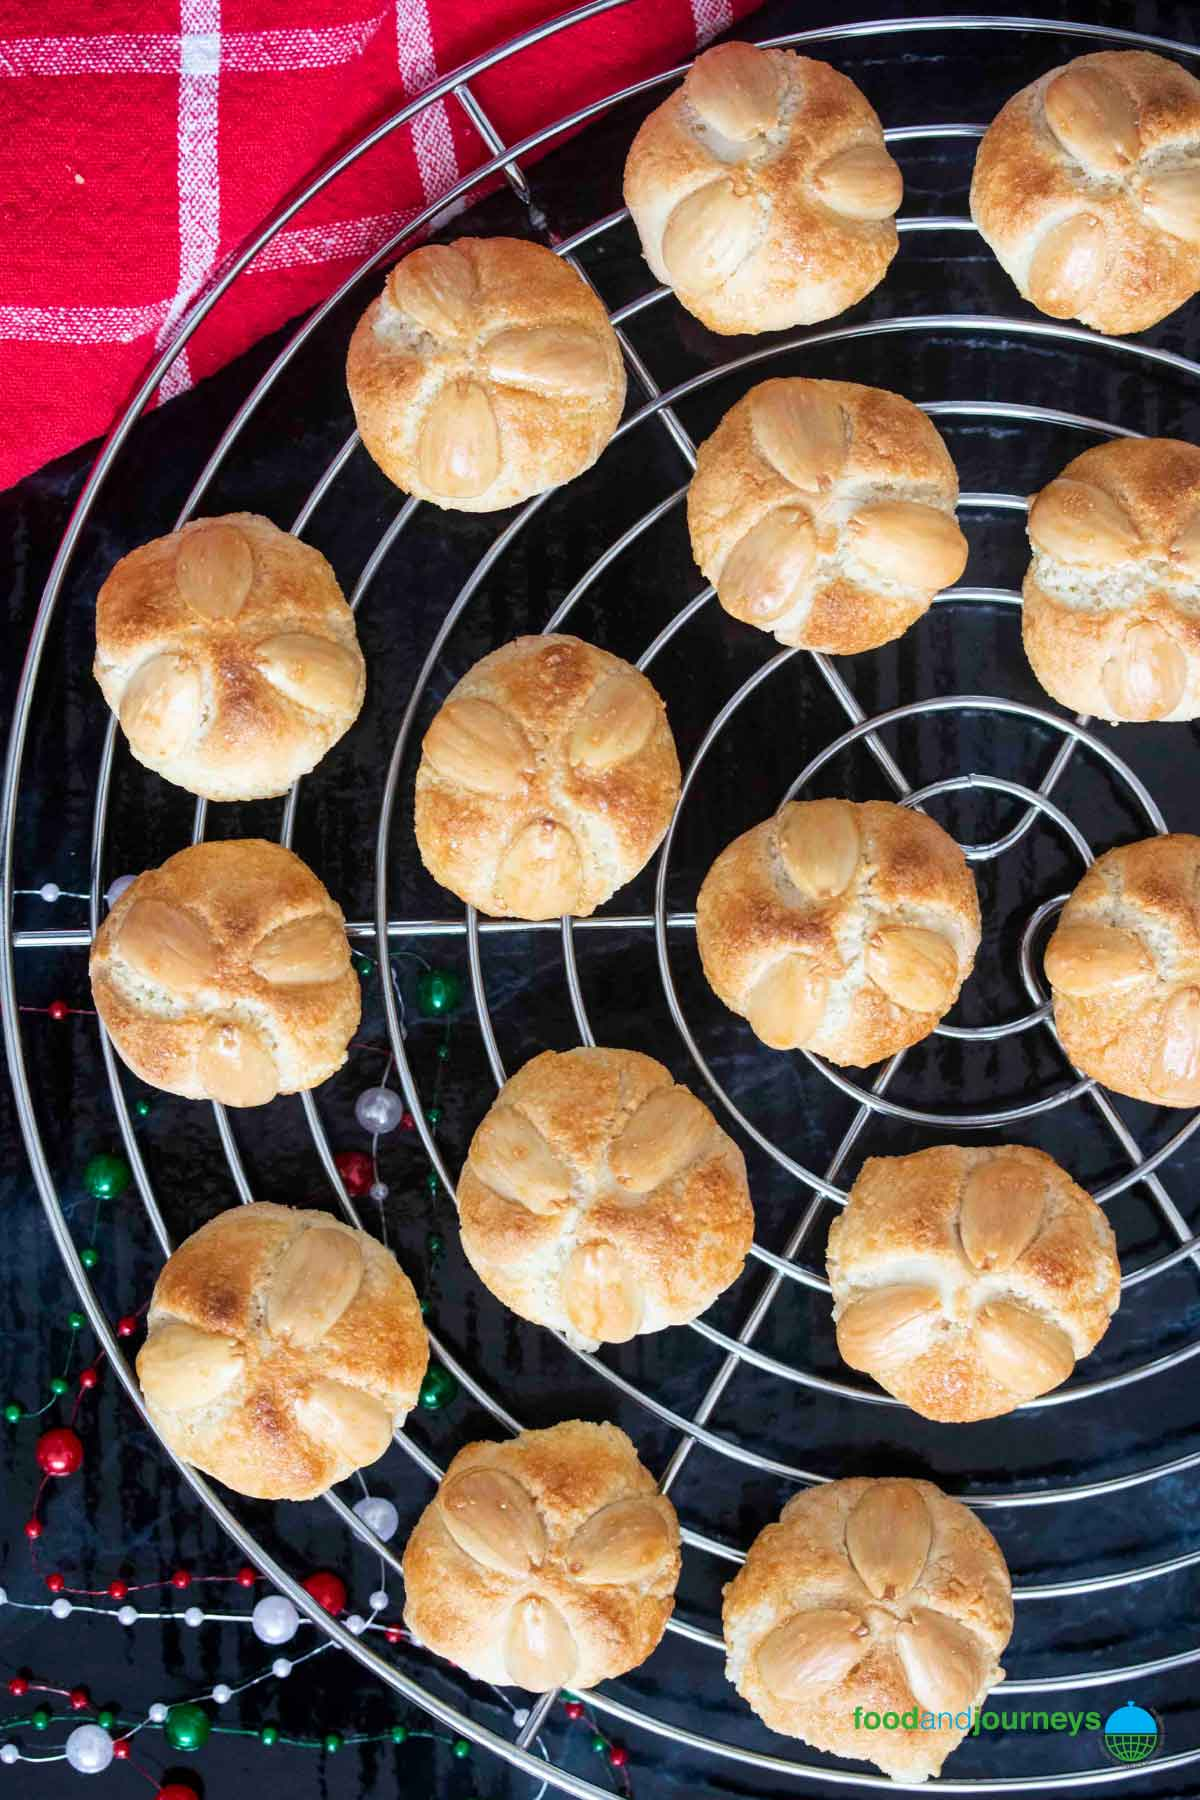 Freshly baked marzipan cookies on a cooling rack, before serving.